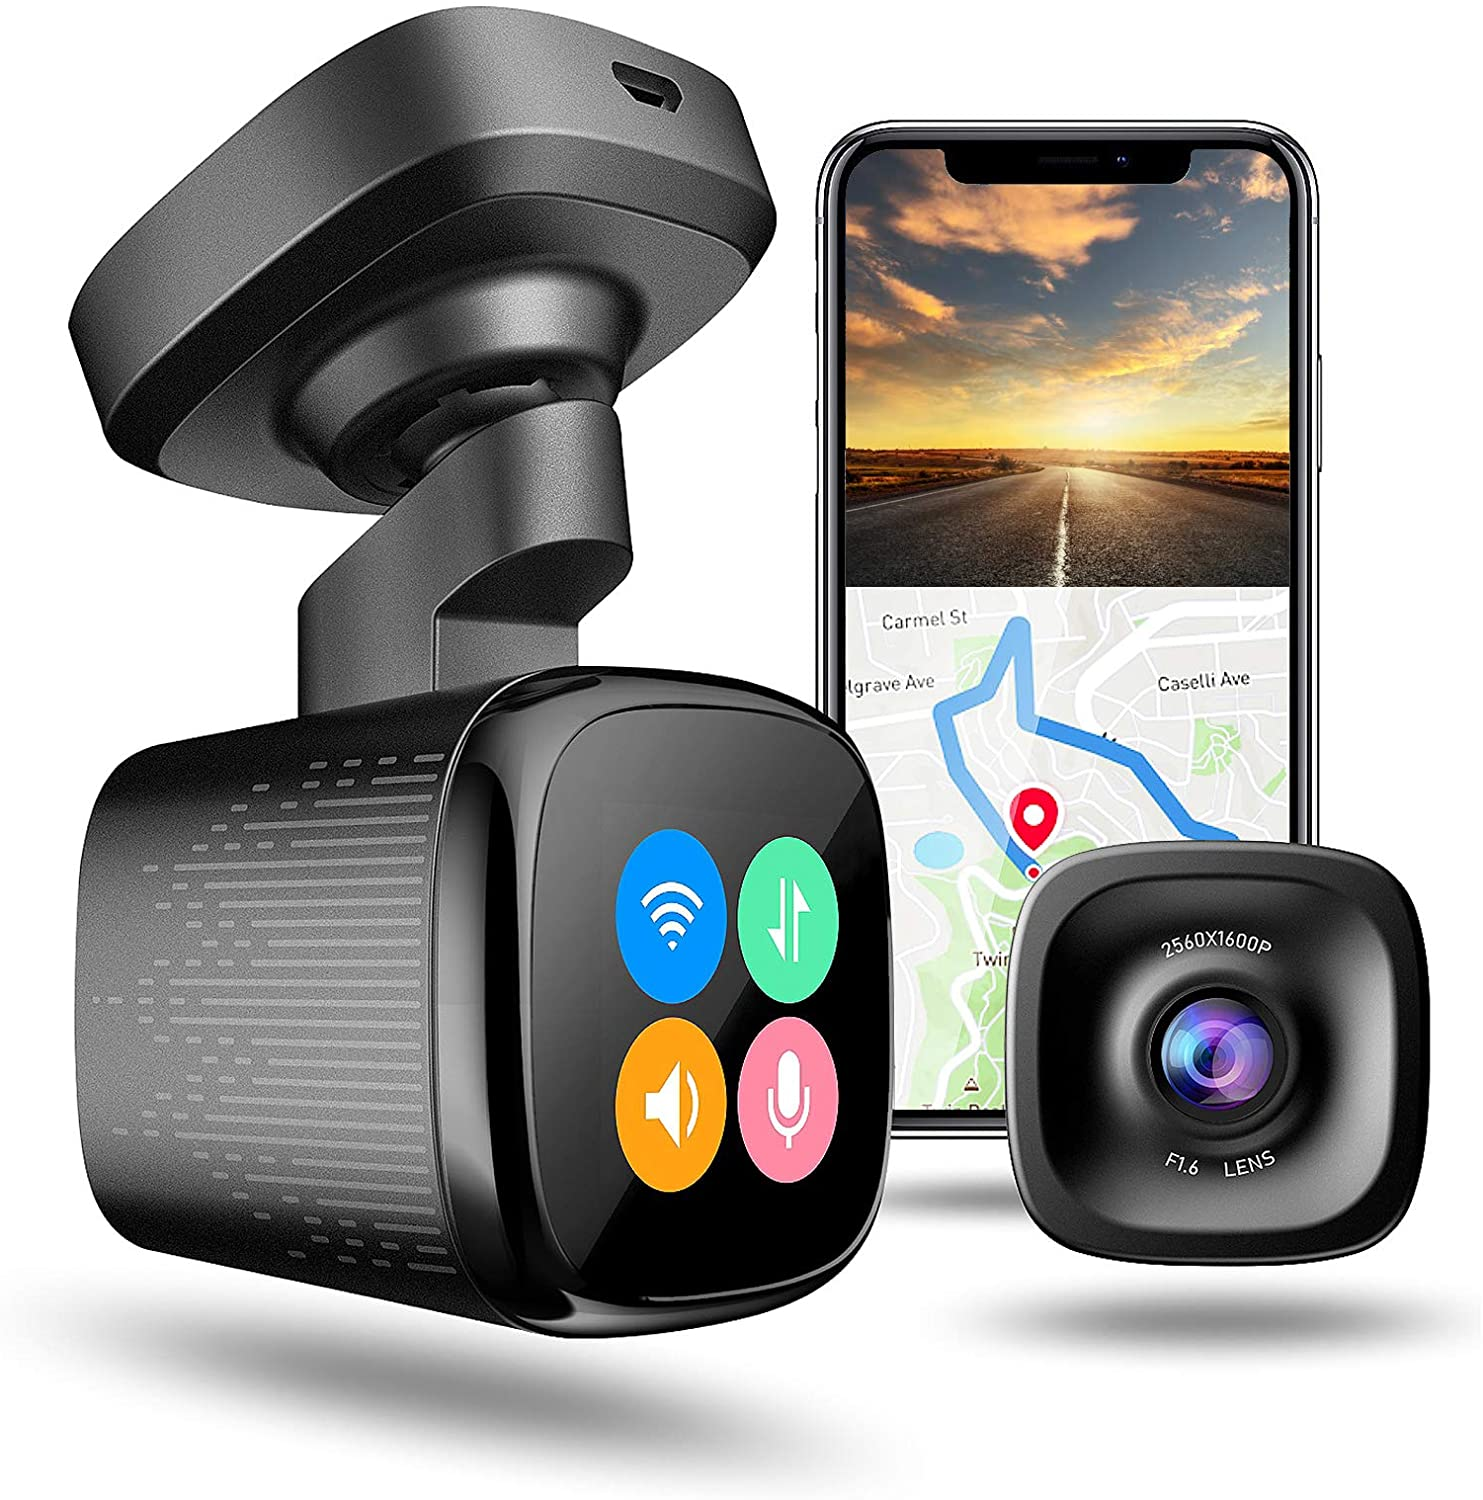 jomise dash cam and smartphone